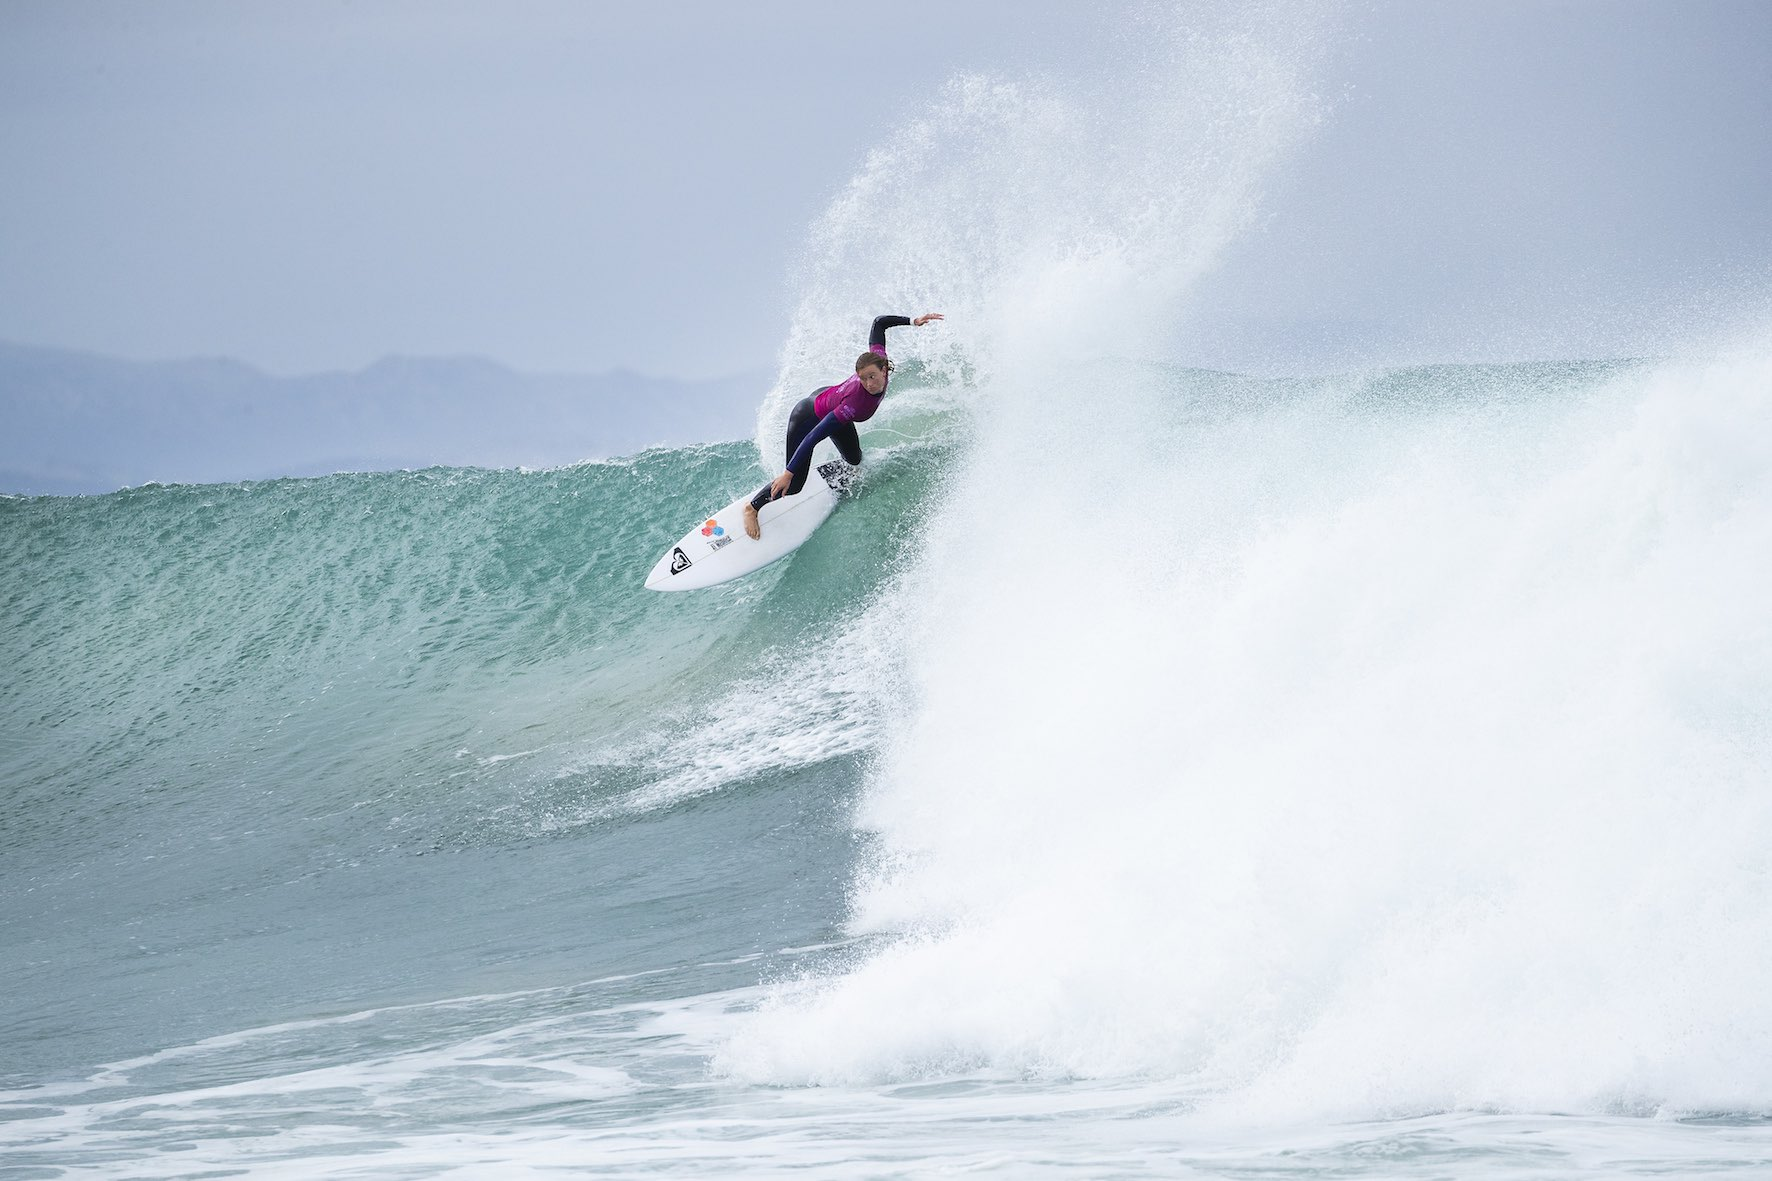 Bianca Buitendag surfing her way to 3rd place at the 2018 Corona Open J-Bay